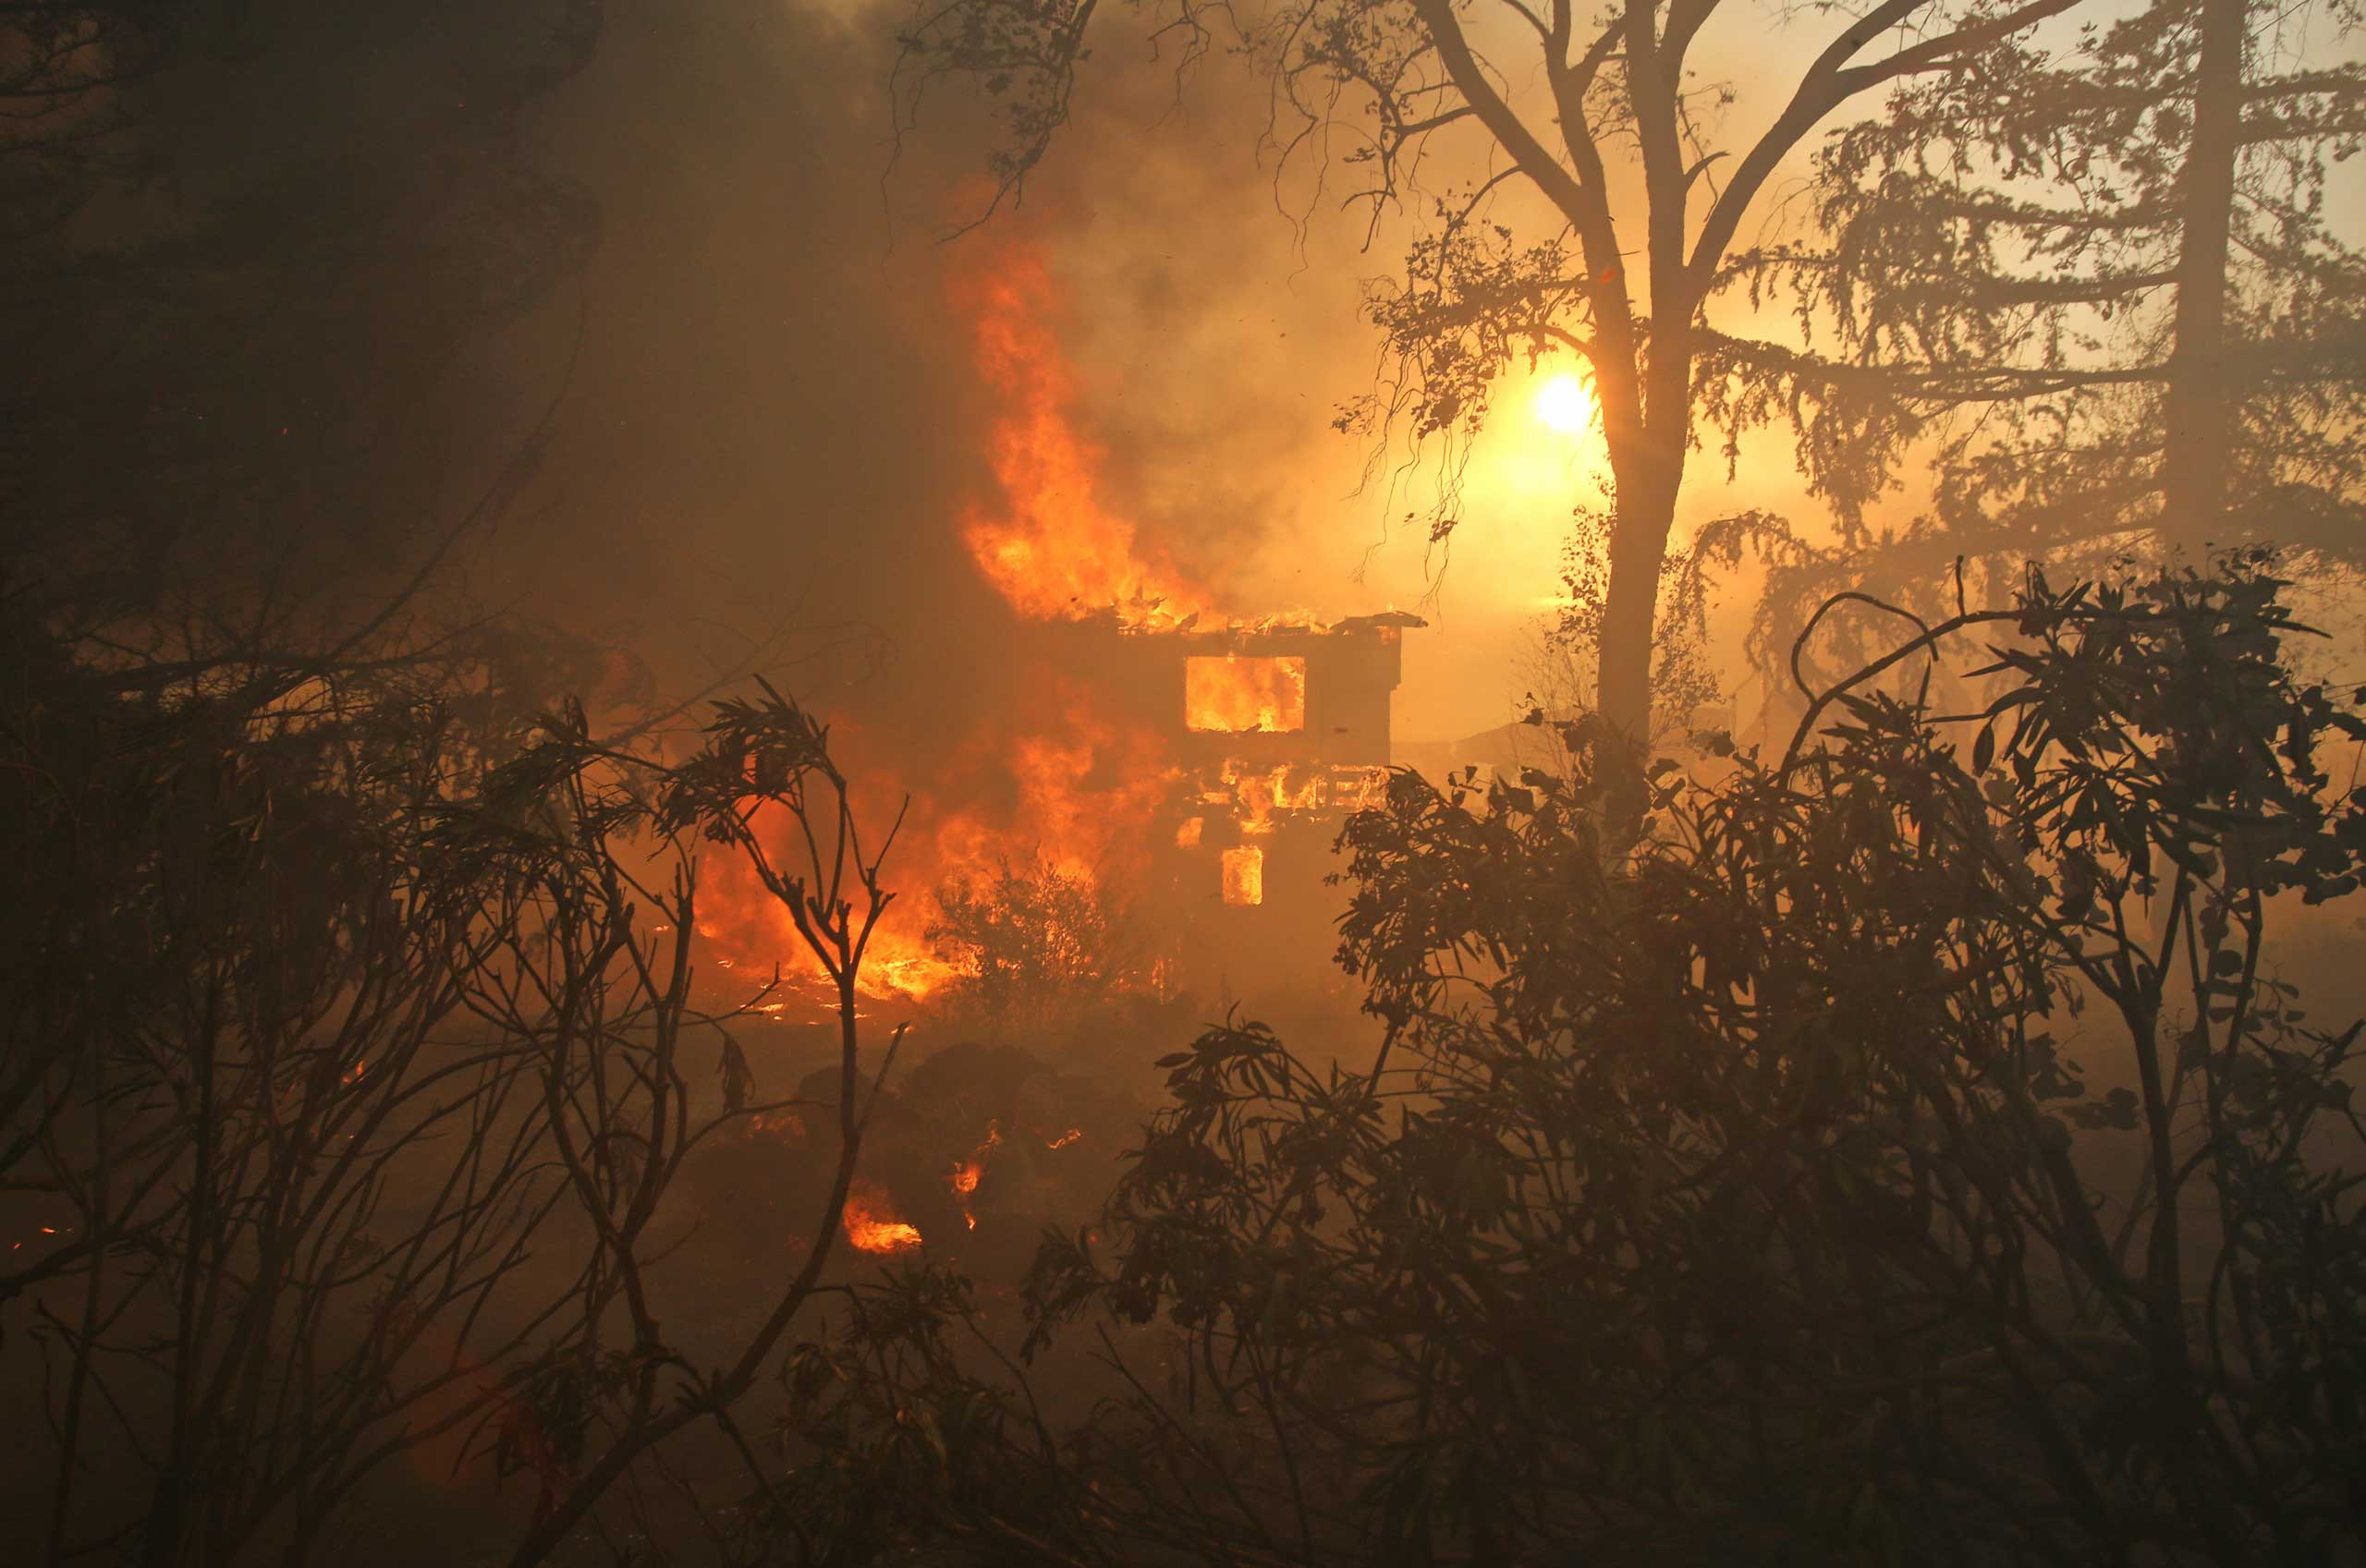 <b>Southern California Wildfires</b> A house is consumed by wildfire in San Marcos, Calif. on May 14, 2014. About 500 acres have burned in the San Marcos blaze, fueled by record heat, high winds and dry conditions. At least four other fires advanced in nearby communities.